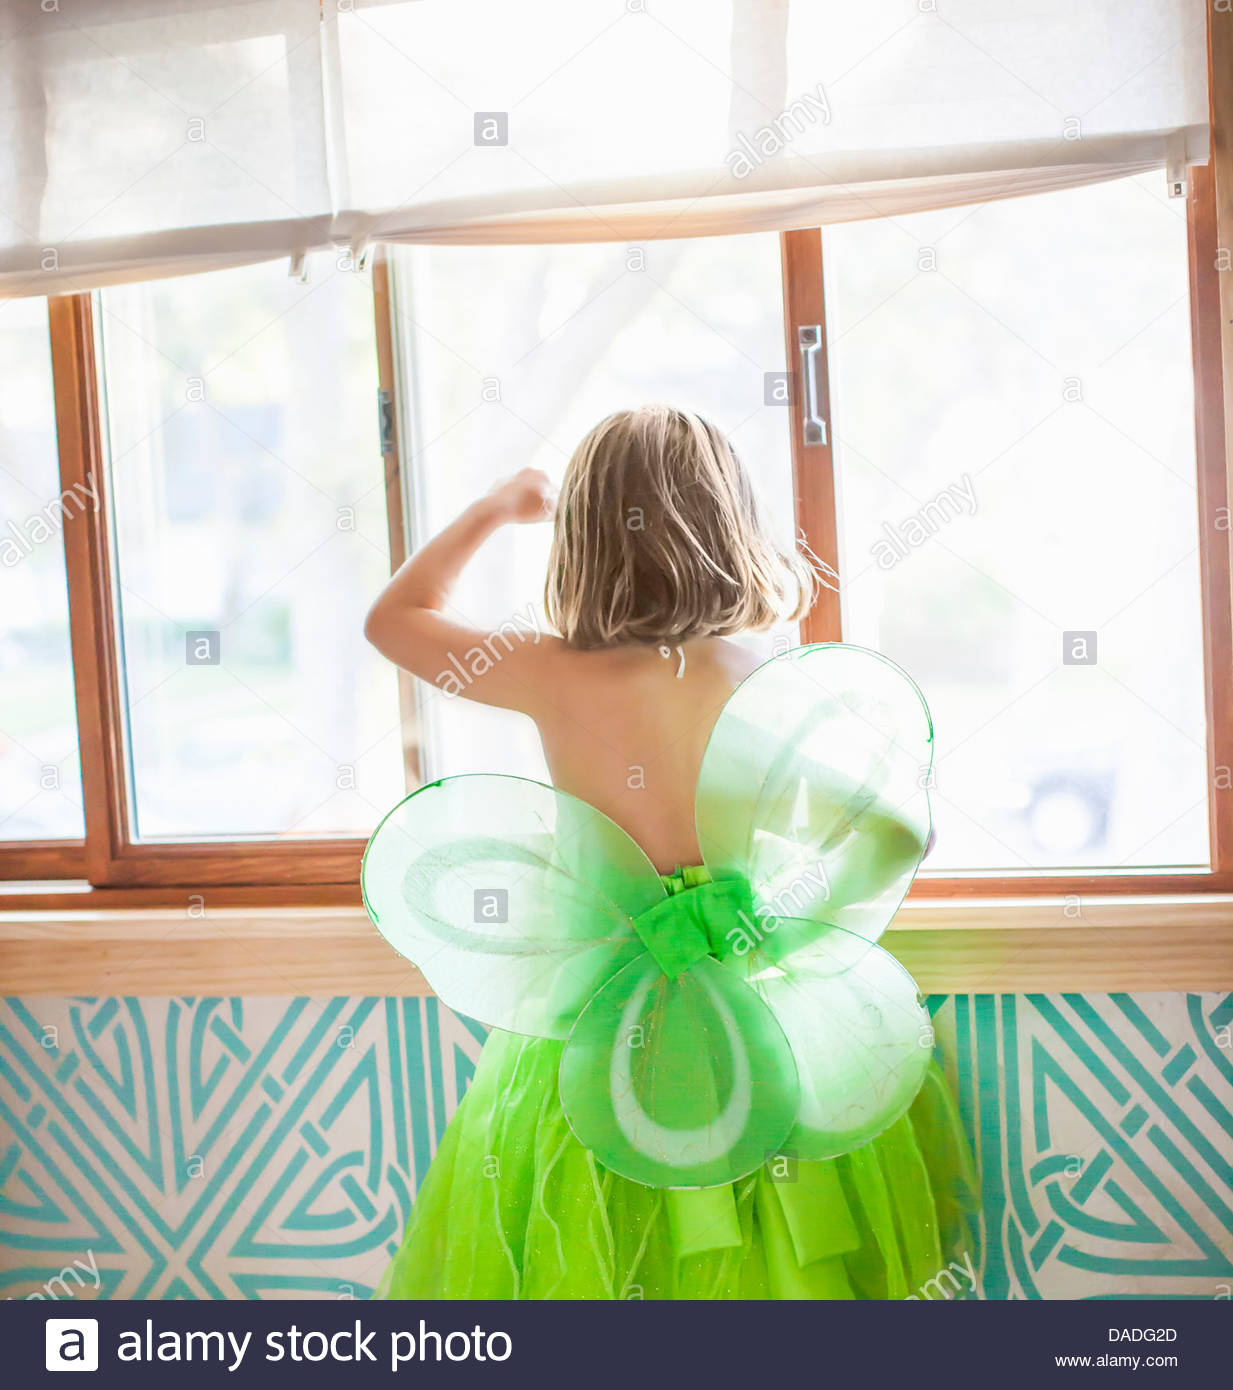 Back view of child in green fairy costume looking out window - Stock Image